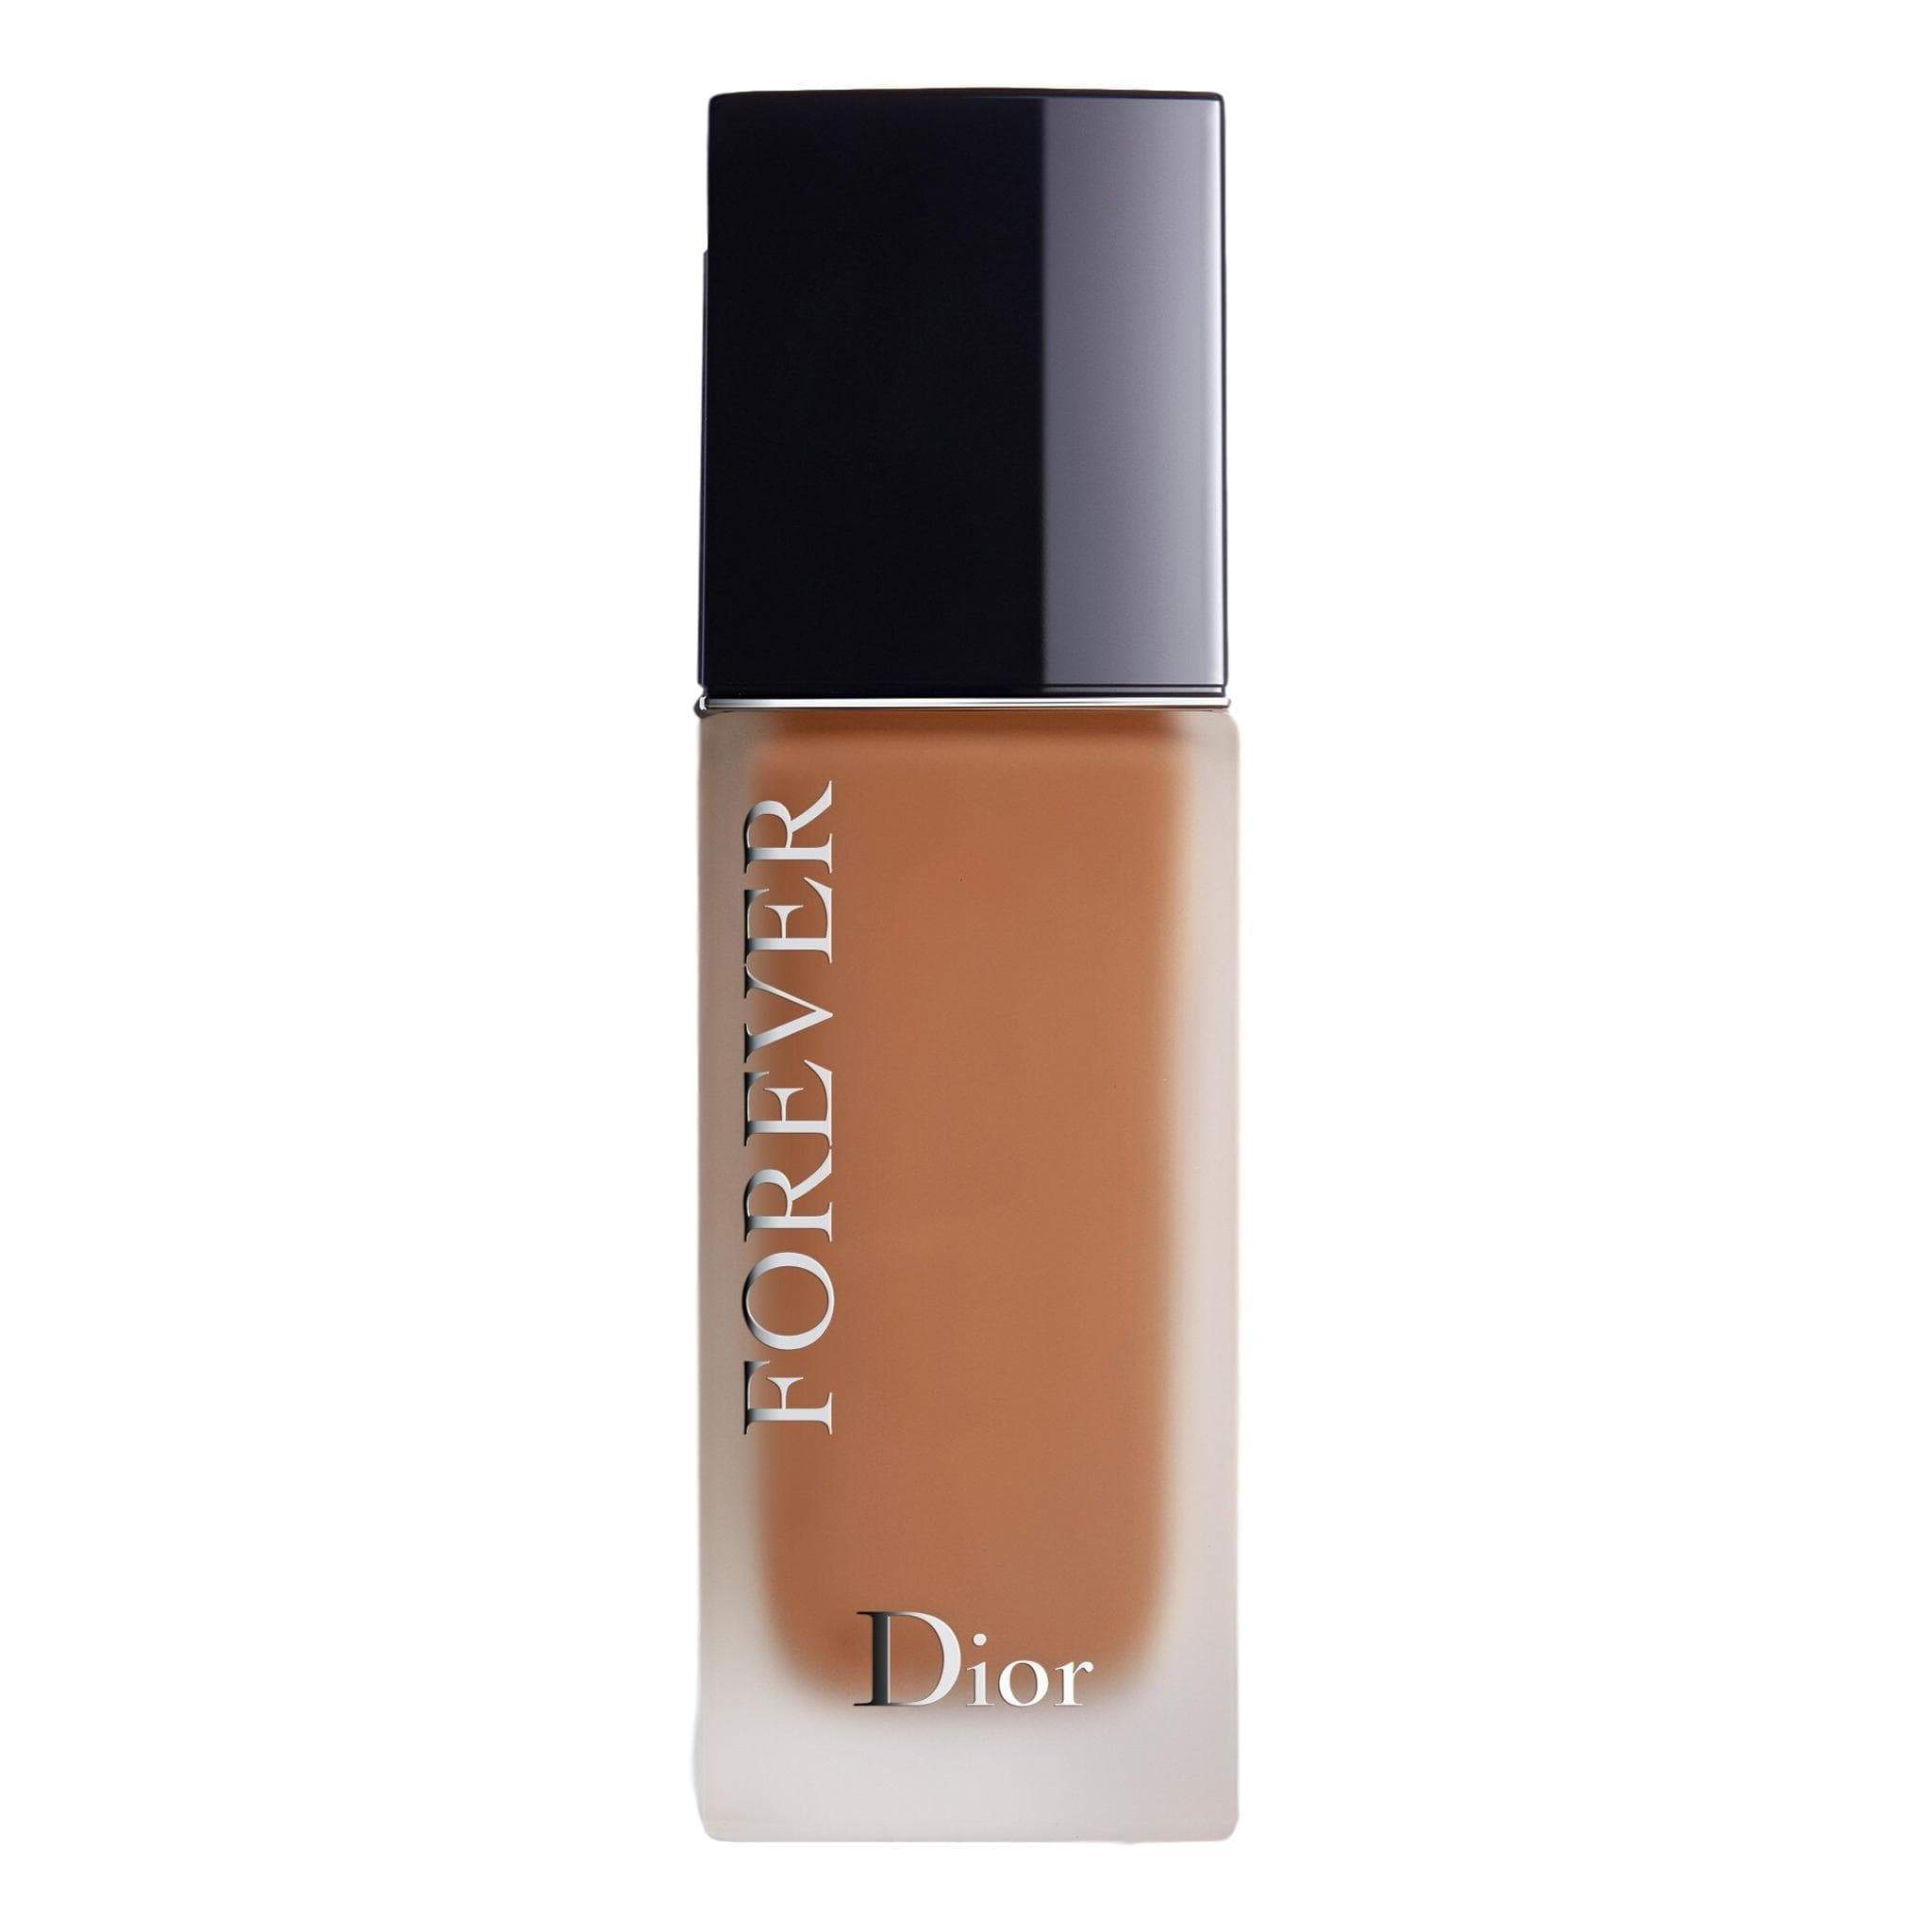 Dior foundation Dior Forever 24H Wear Skin-Caring Foundation - 6N Neutral